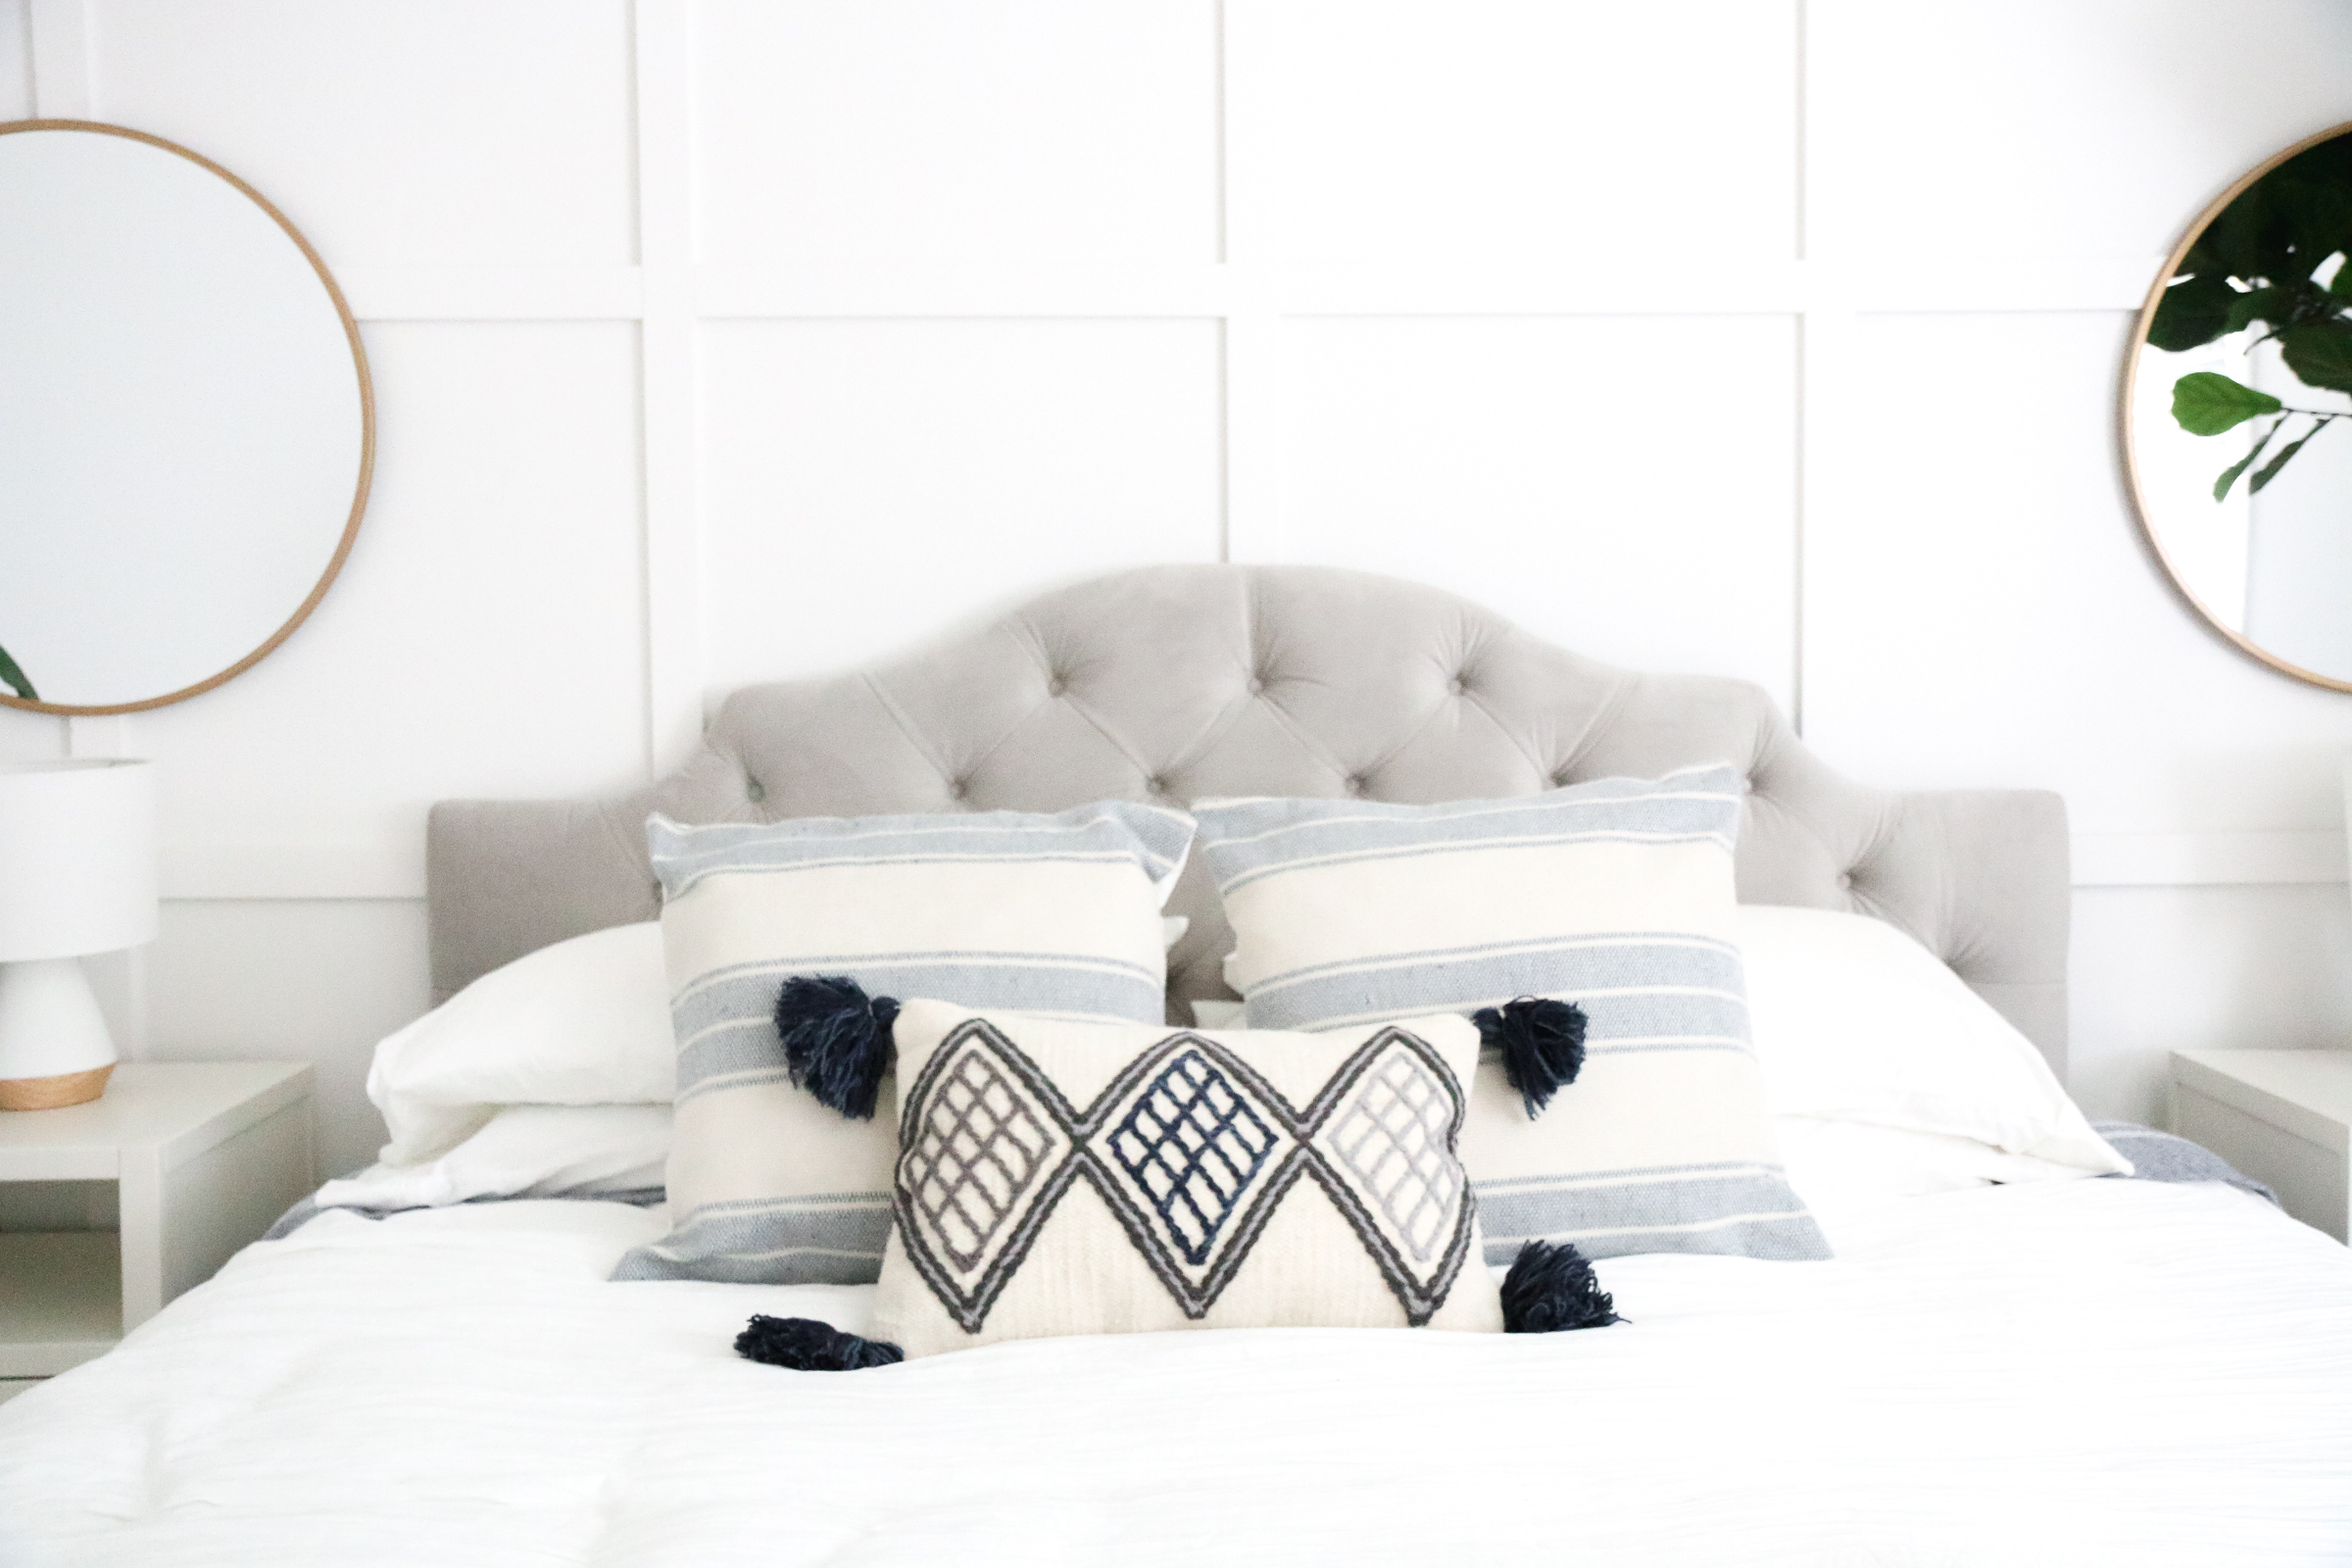 Our New Home Big Reveal: Master Bedroom Design Ideas by Utah fashion blogger Sandy A La Mode